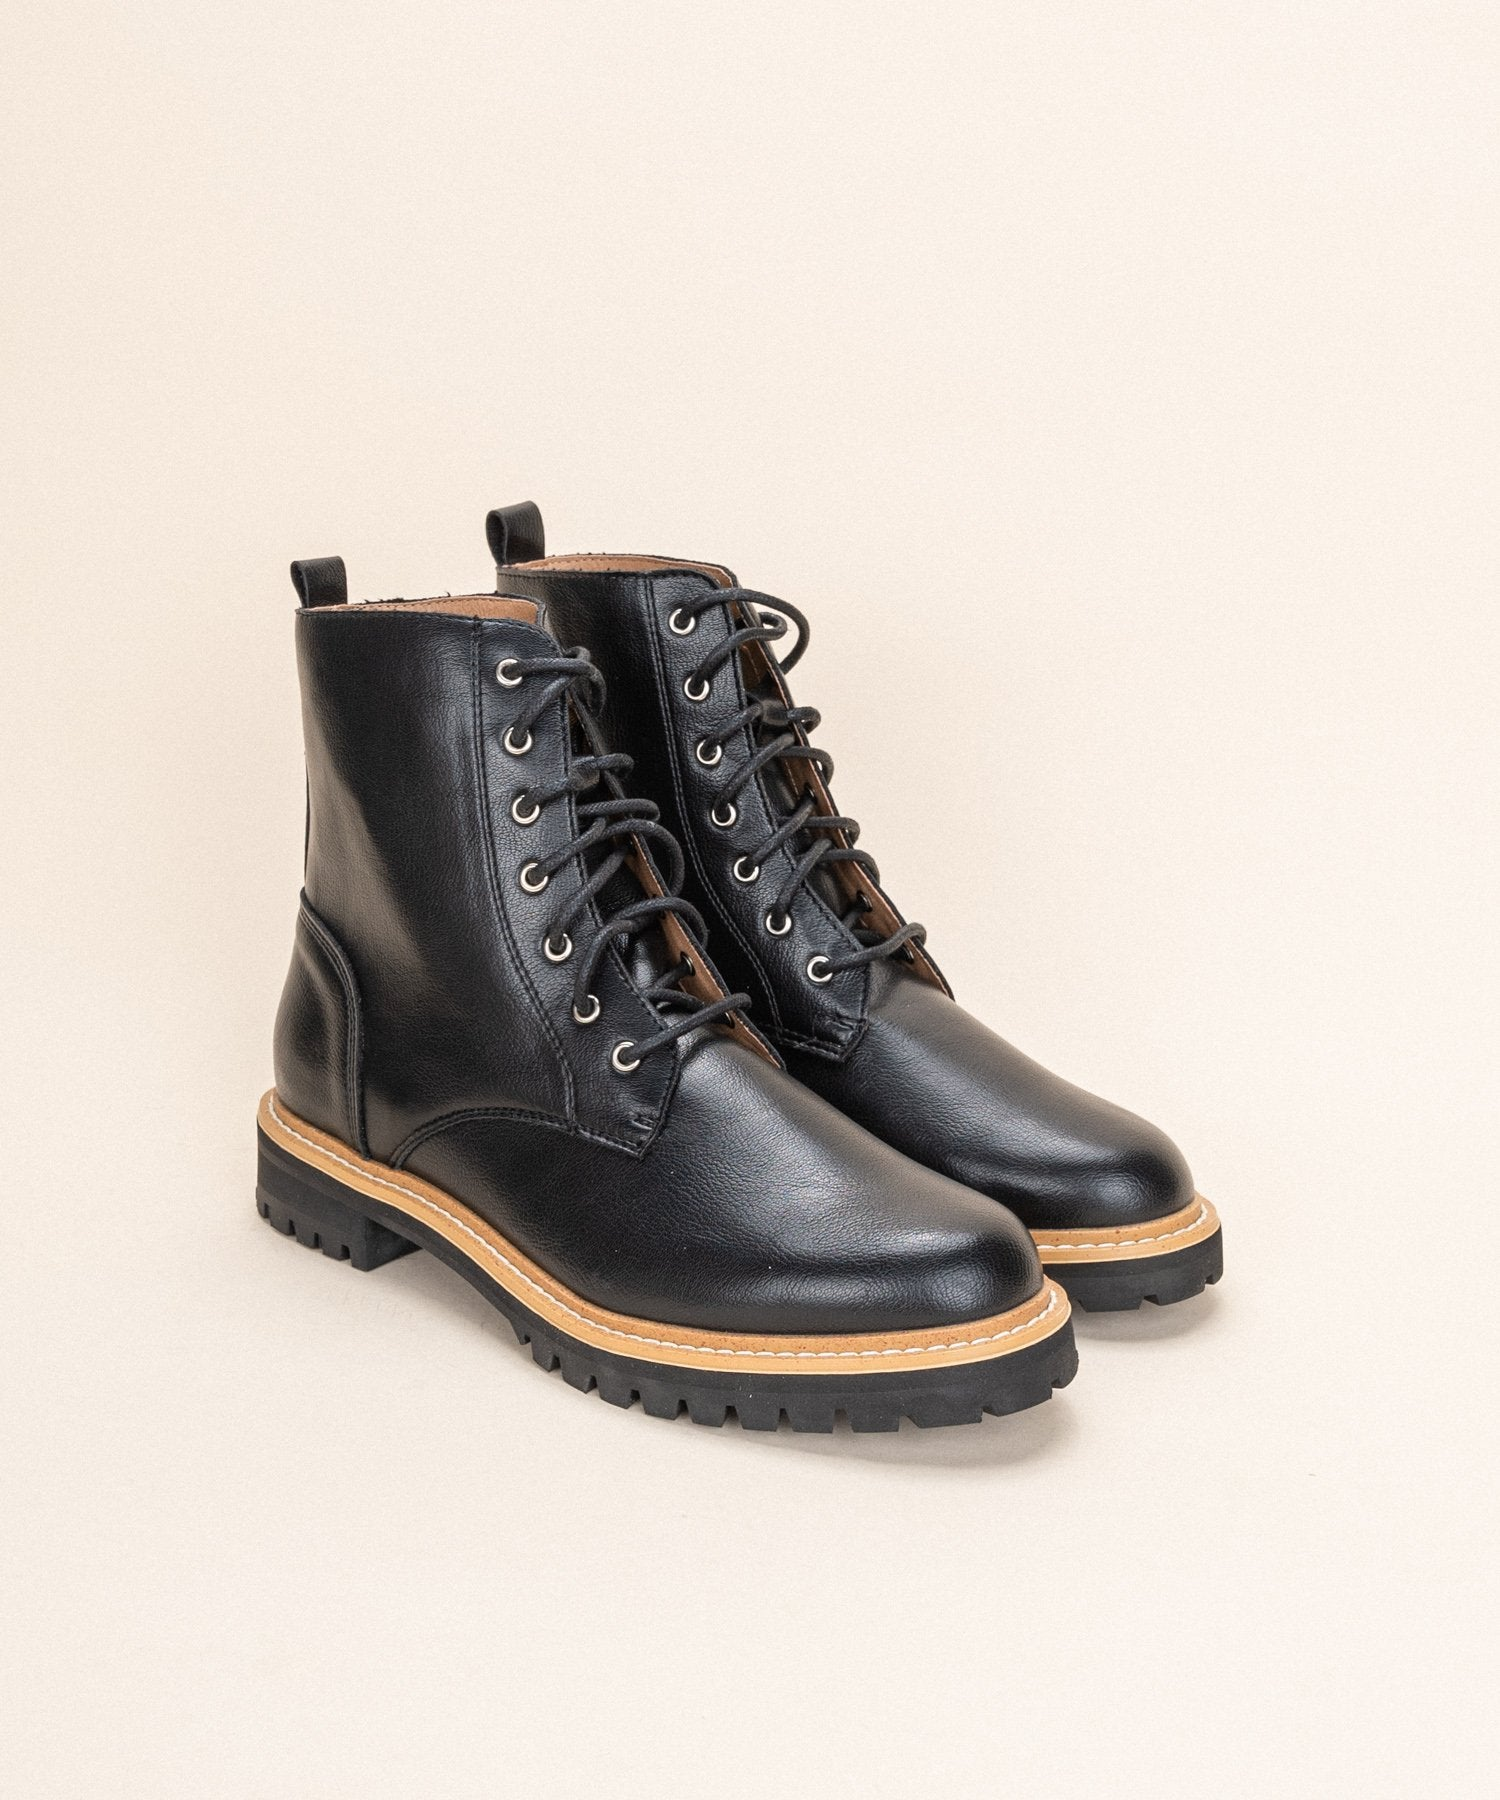 Shelby Military Boot - Black - Elysian Boutique